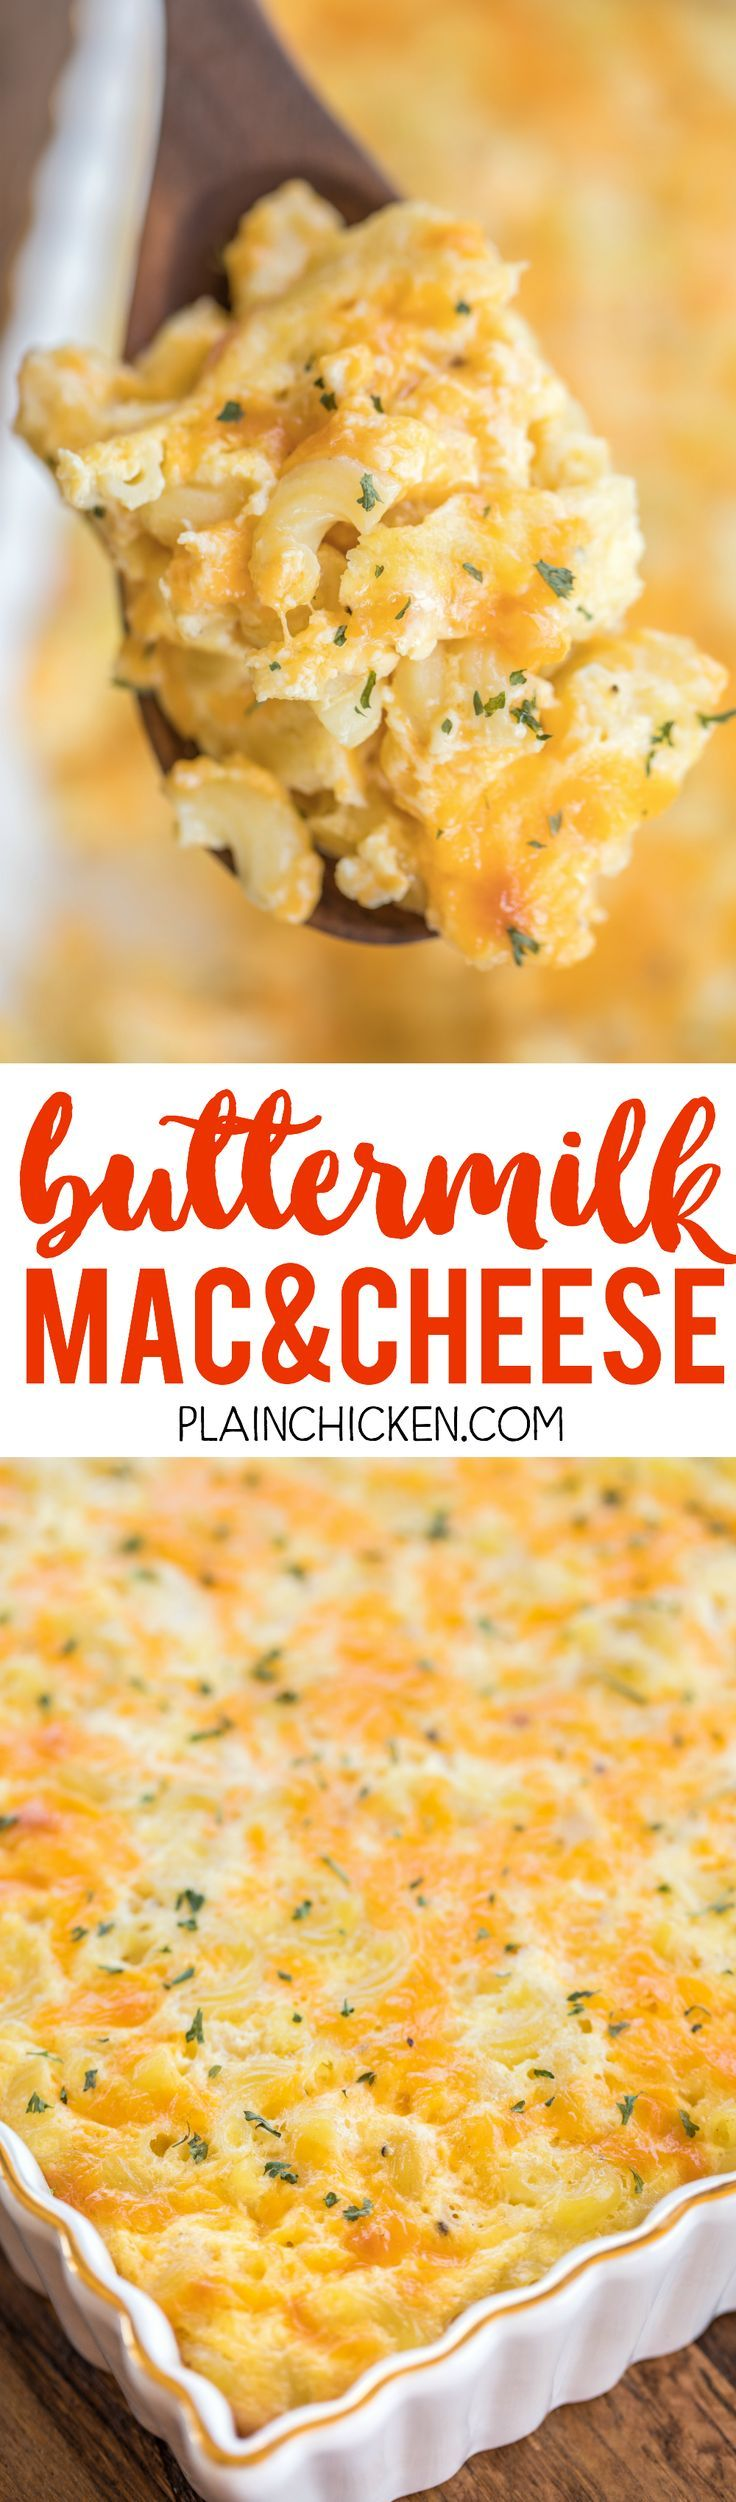 Buttermilk Mac and Cheese - CRAZY good!!! Only 5 ingredients! I wasn't sure how I would like the buttermilk, but it was SO good! Eggs, cheddar cheese, buttermilk, butter, macaroni. Can make ahead and freezer for later. Everyone RAVES about this yummy side